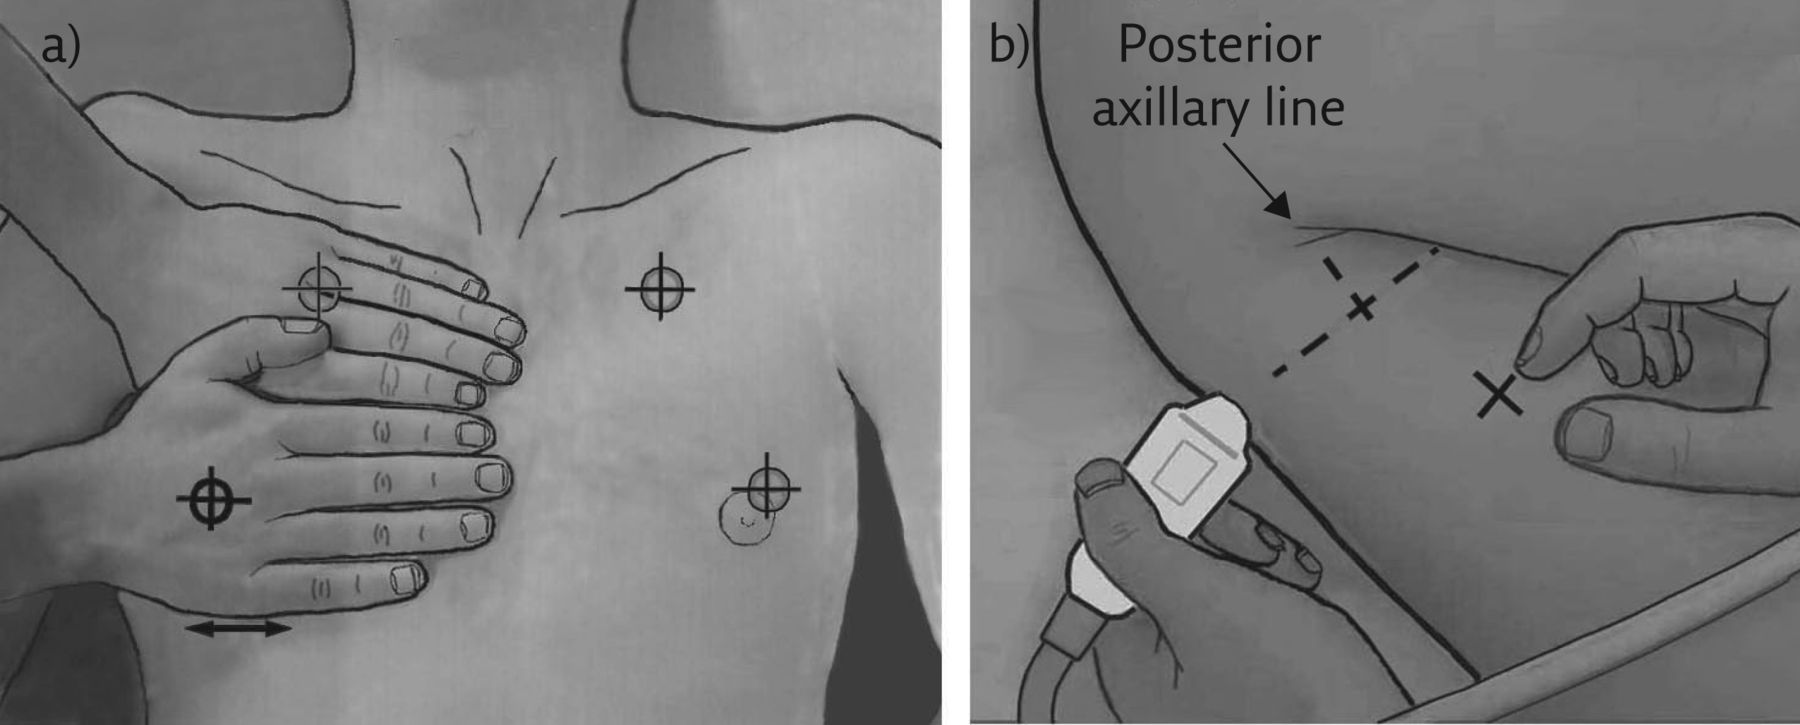 Novel approaches to ultrasonography of the lung and pleural